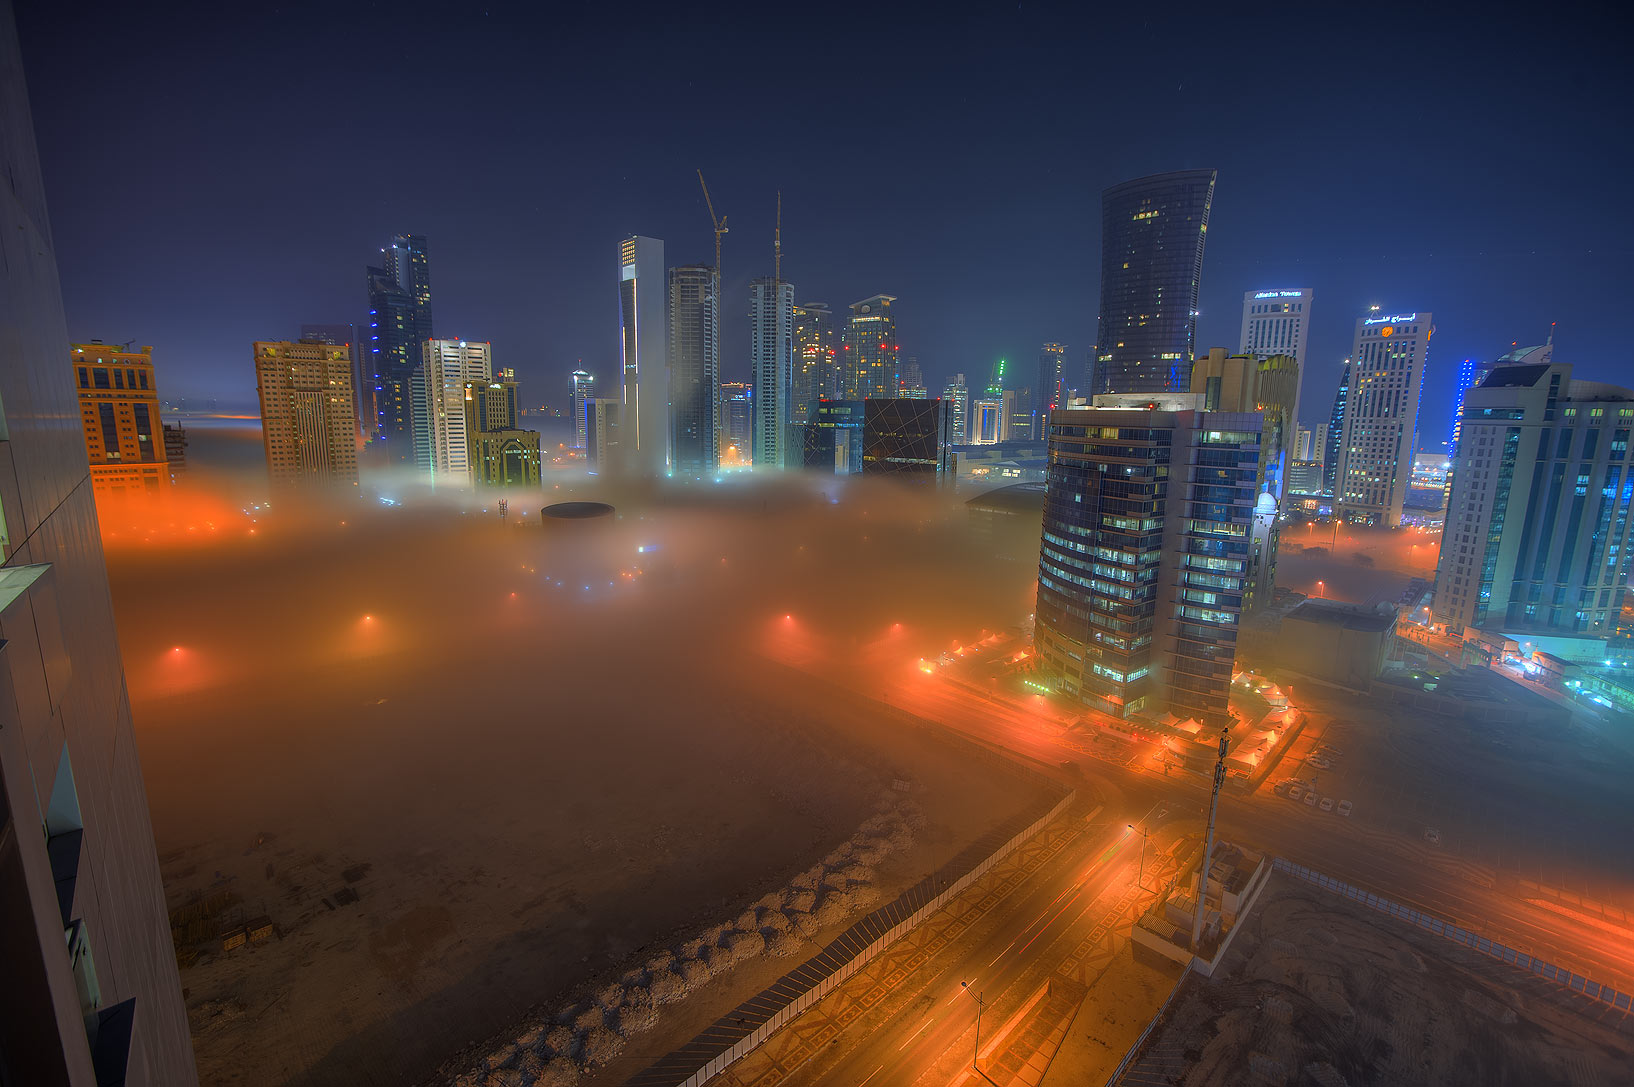 Fog in West Bay from Room 1604 of Dareen Tower. Doha, Qatar